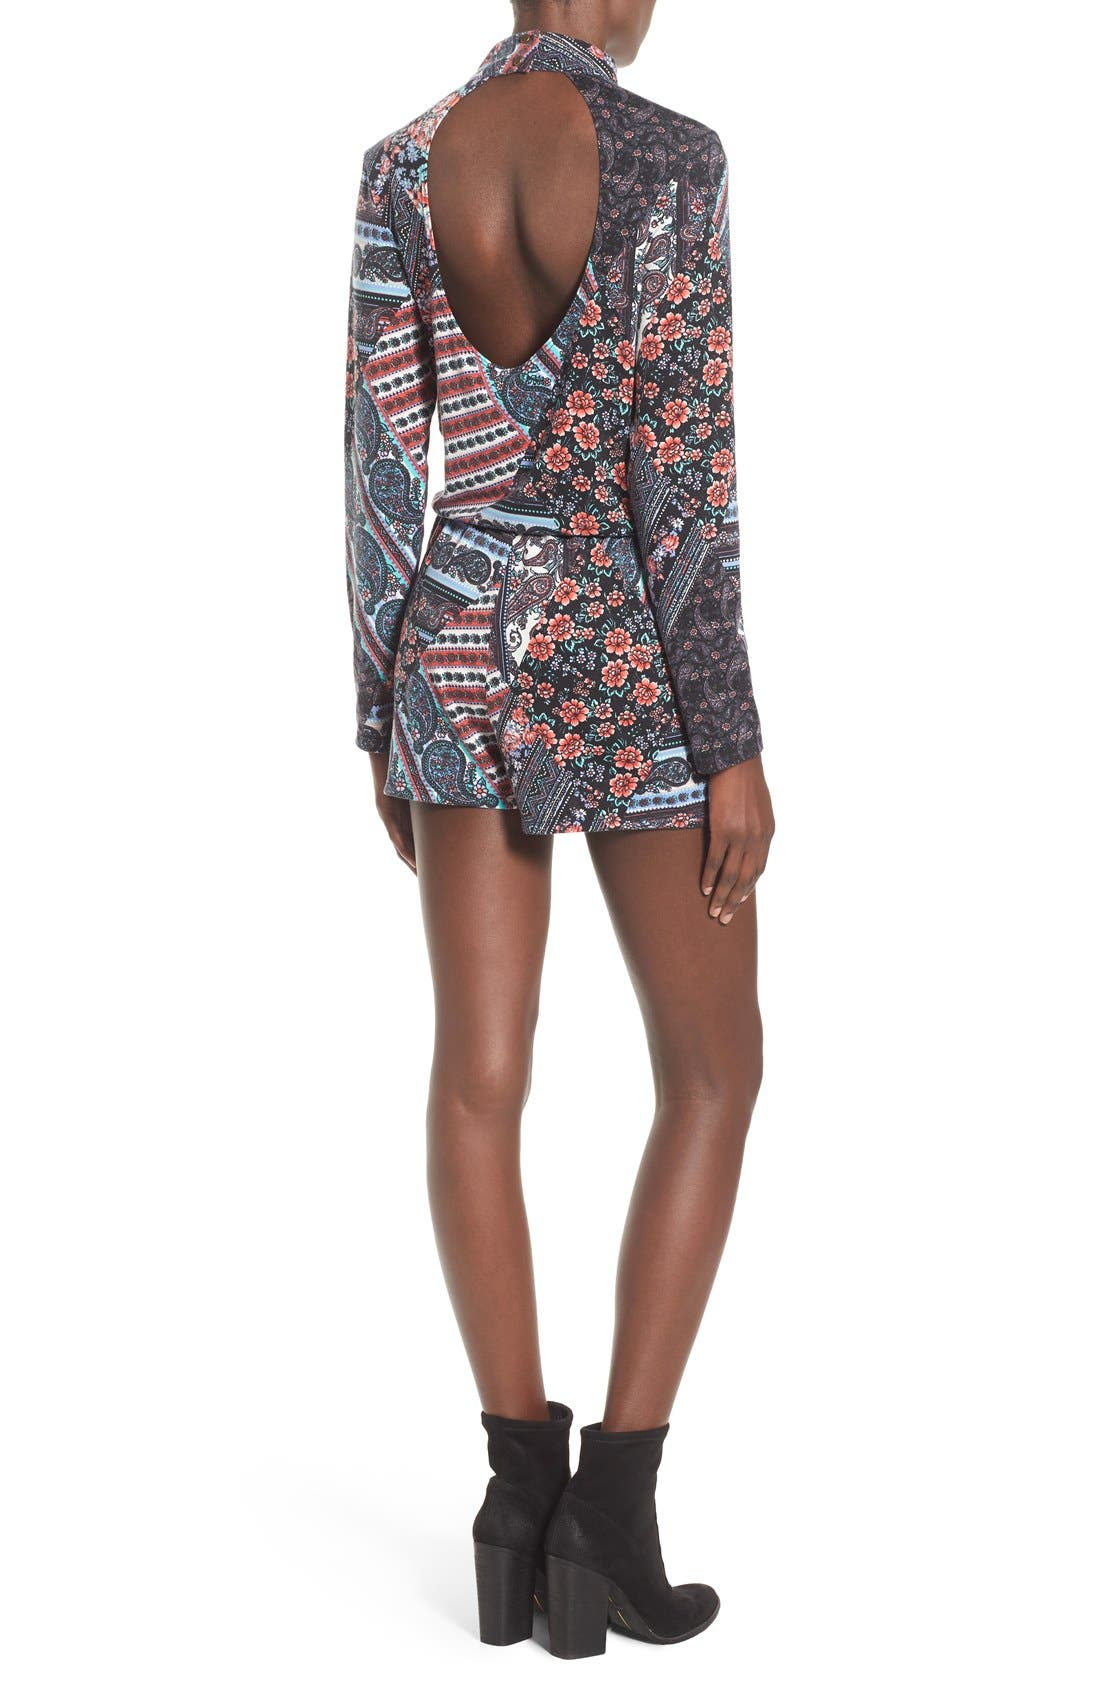 MIMI CHICA, Long Sleeve Mixed Print Romper, Alternate thumbnail 2, color, 020